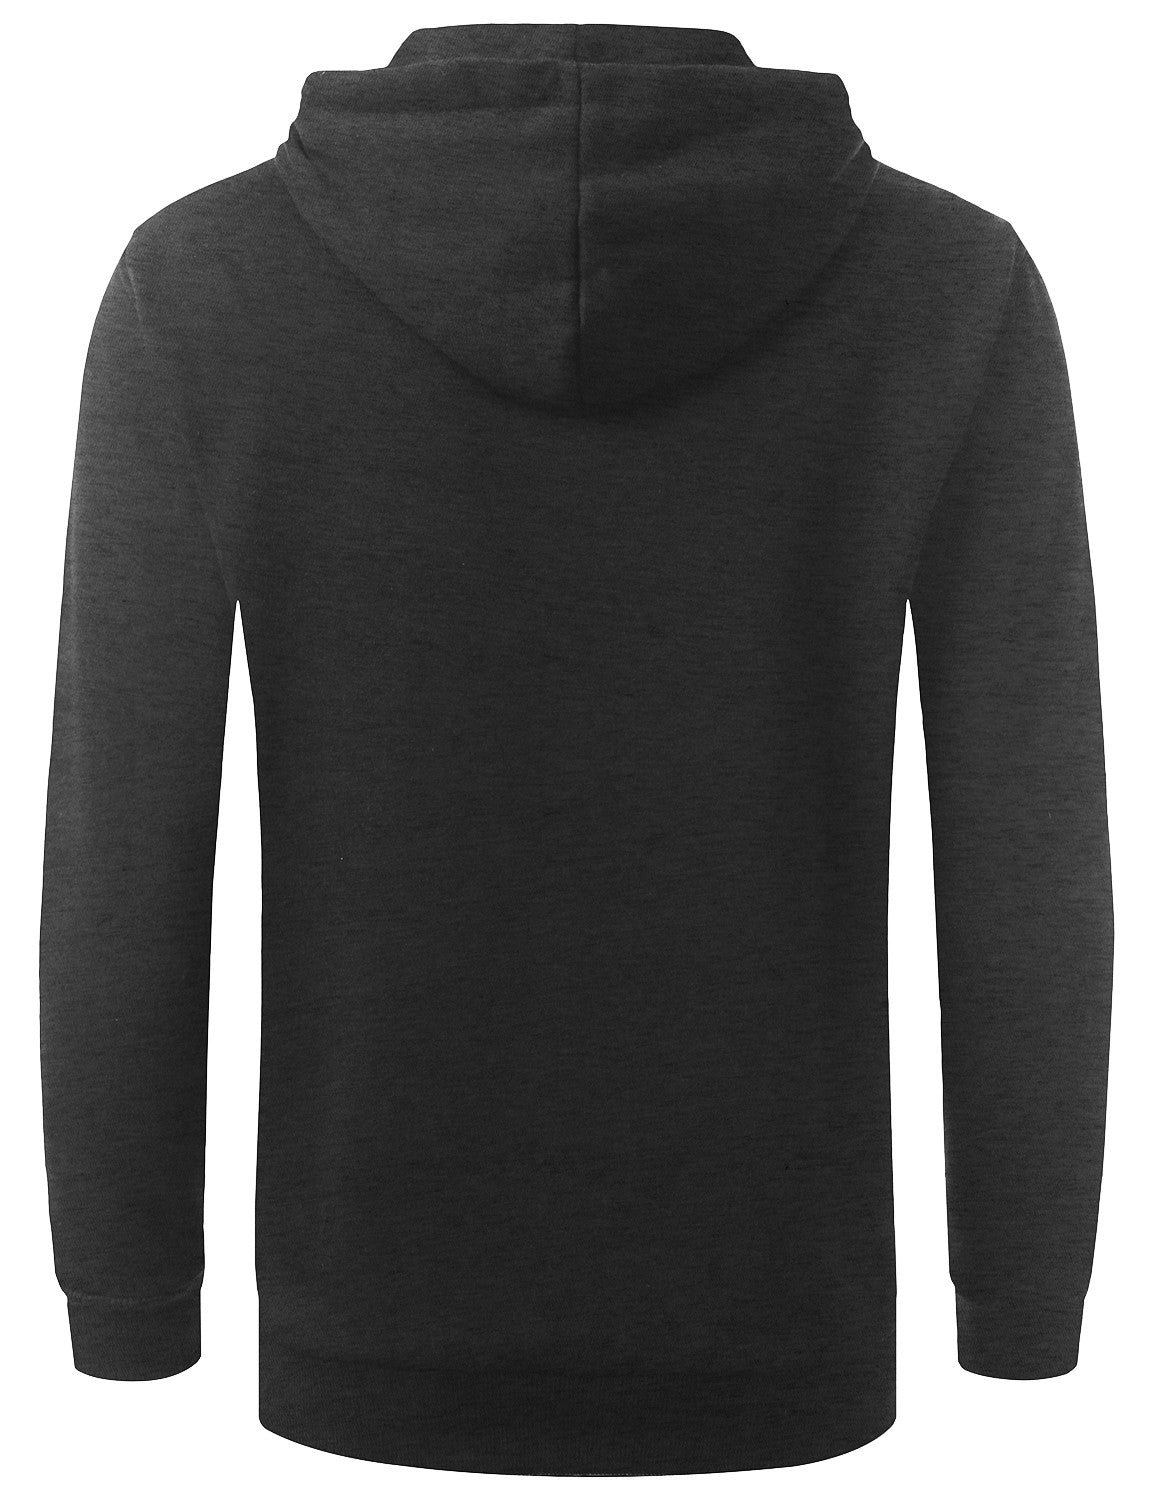 CHARCOAL Basic Long Sleeve Pullover Hoodie Sweatshirt - URBANCREWS